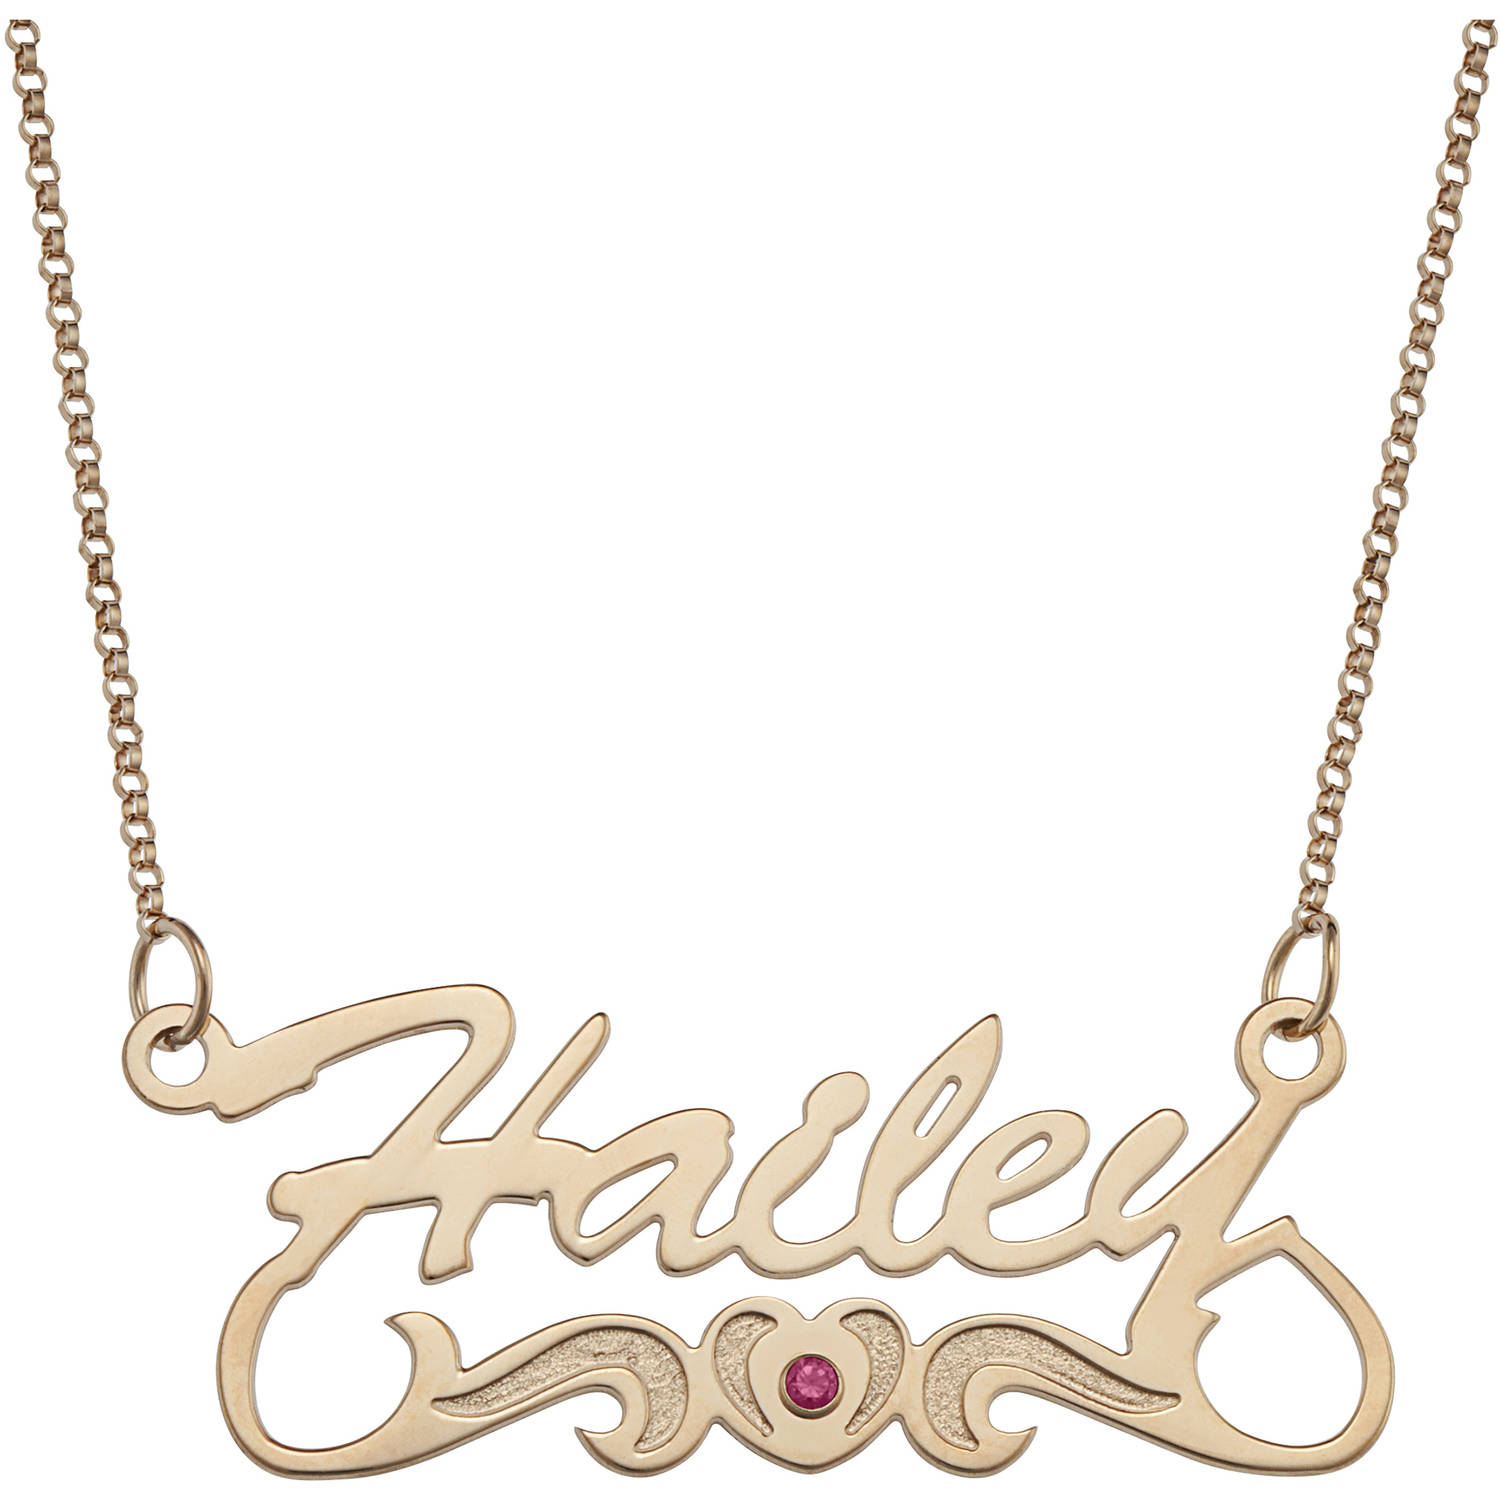 handcrafted com dainty necklace dp jewelry aolo amazon name customized hannah cursive l